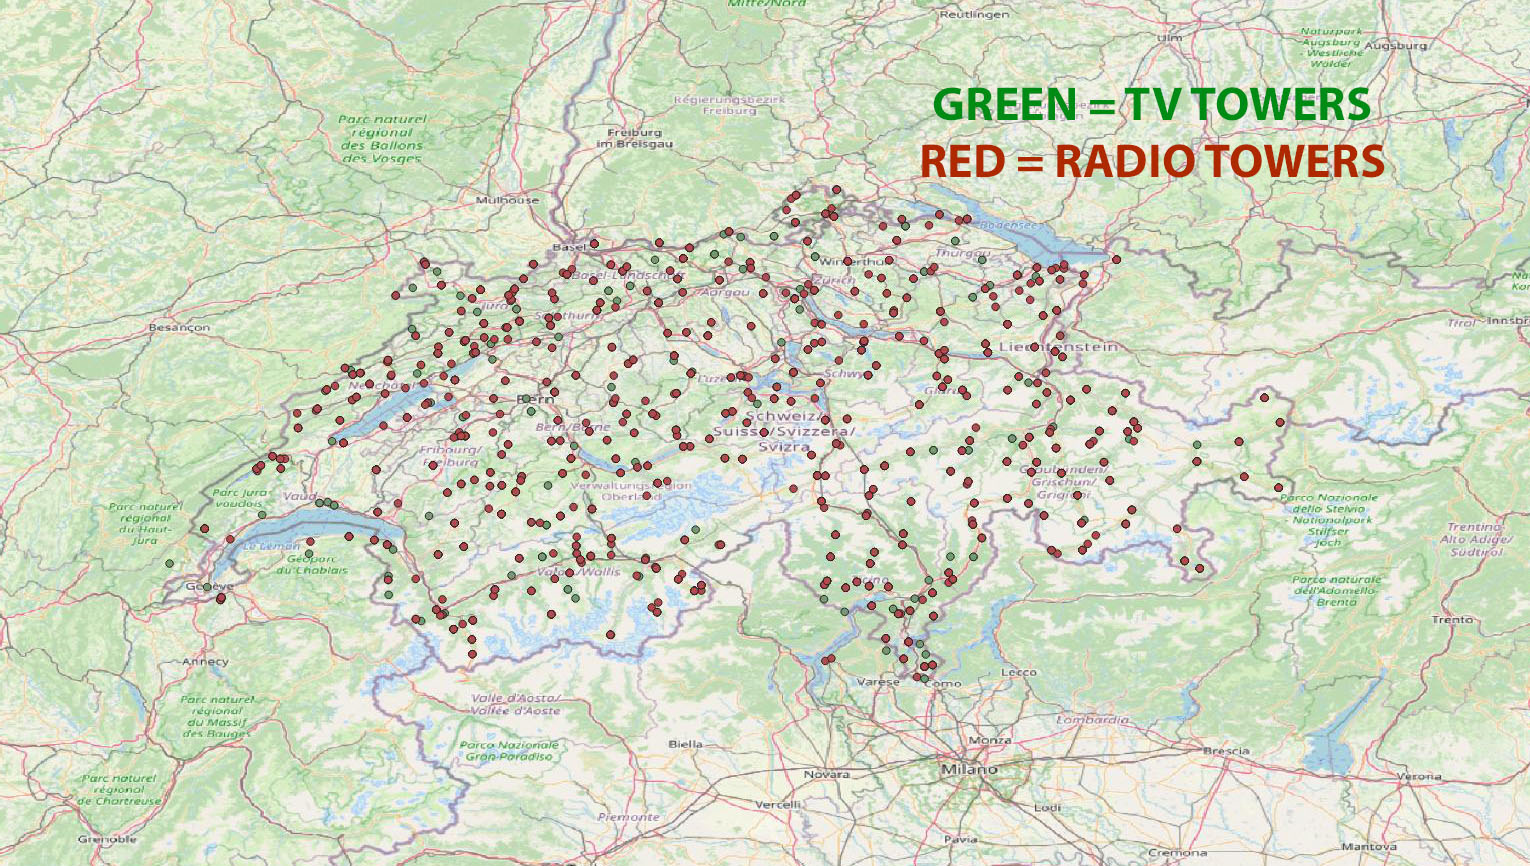 TABURET - SWITZERLAND VFR TV AND RADIO MASTS MSFS